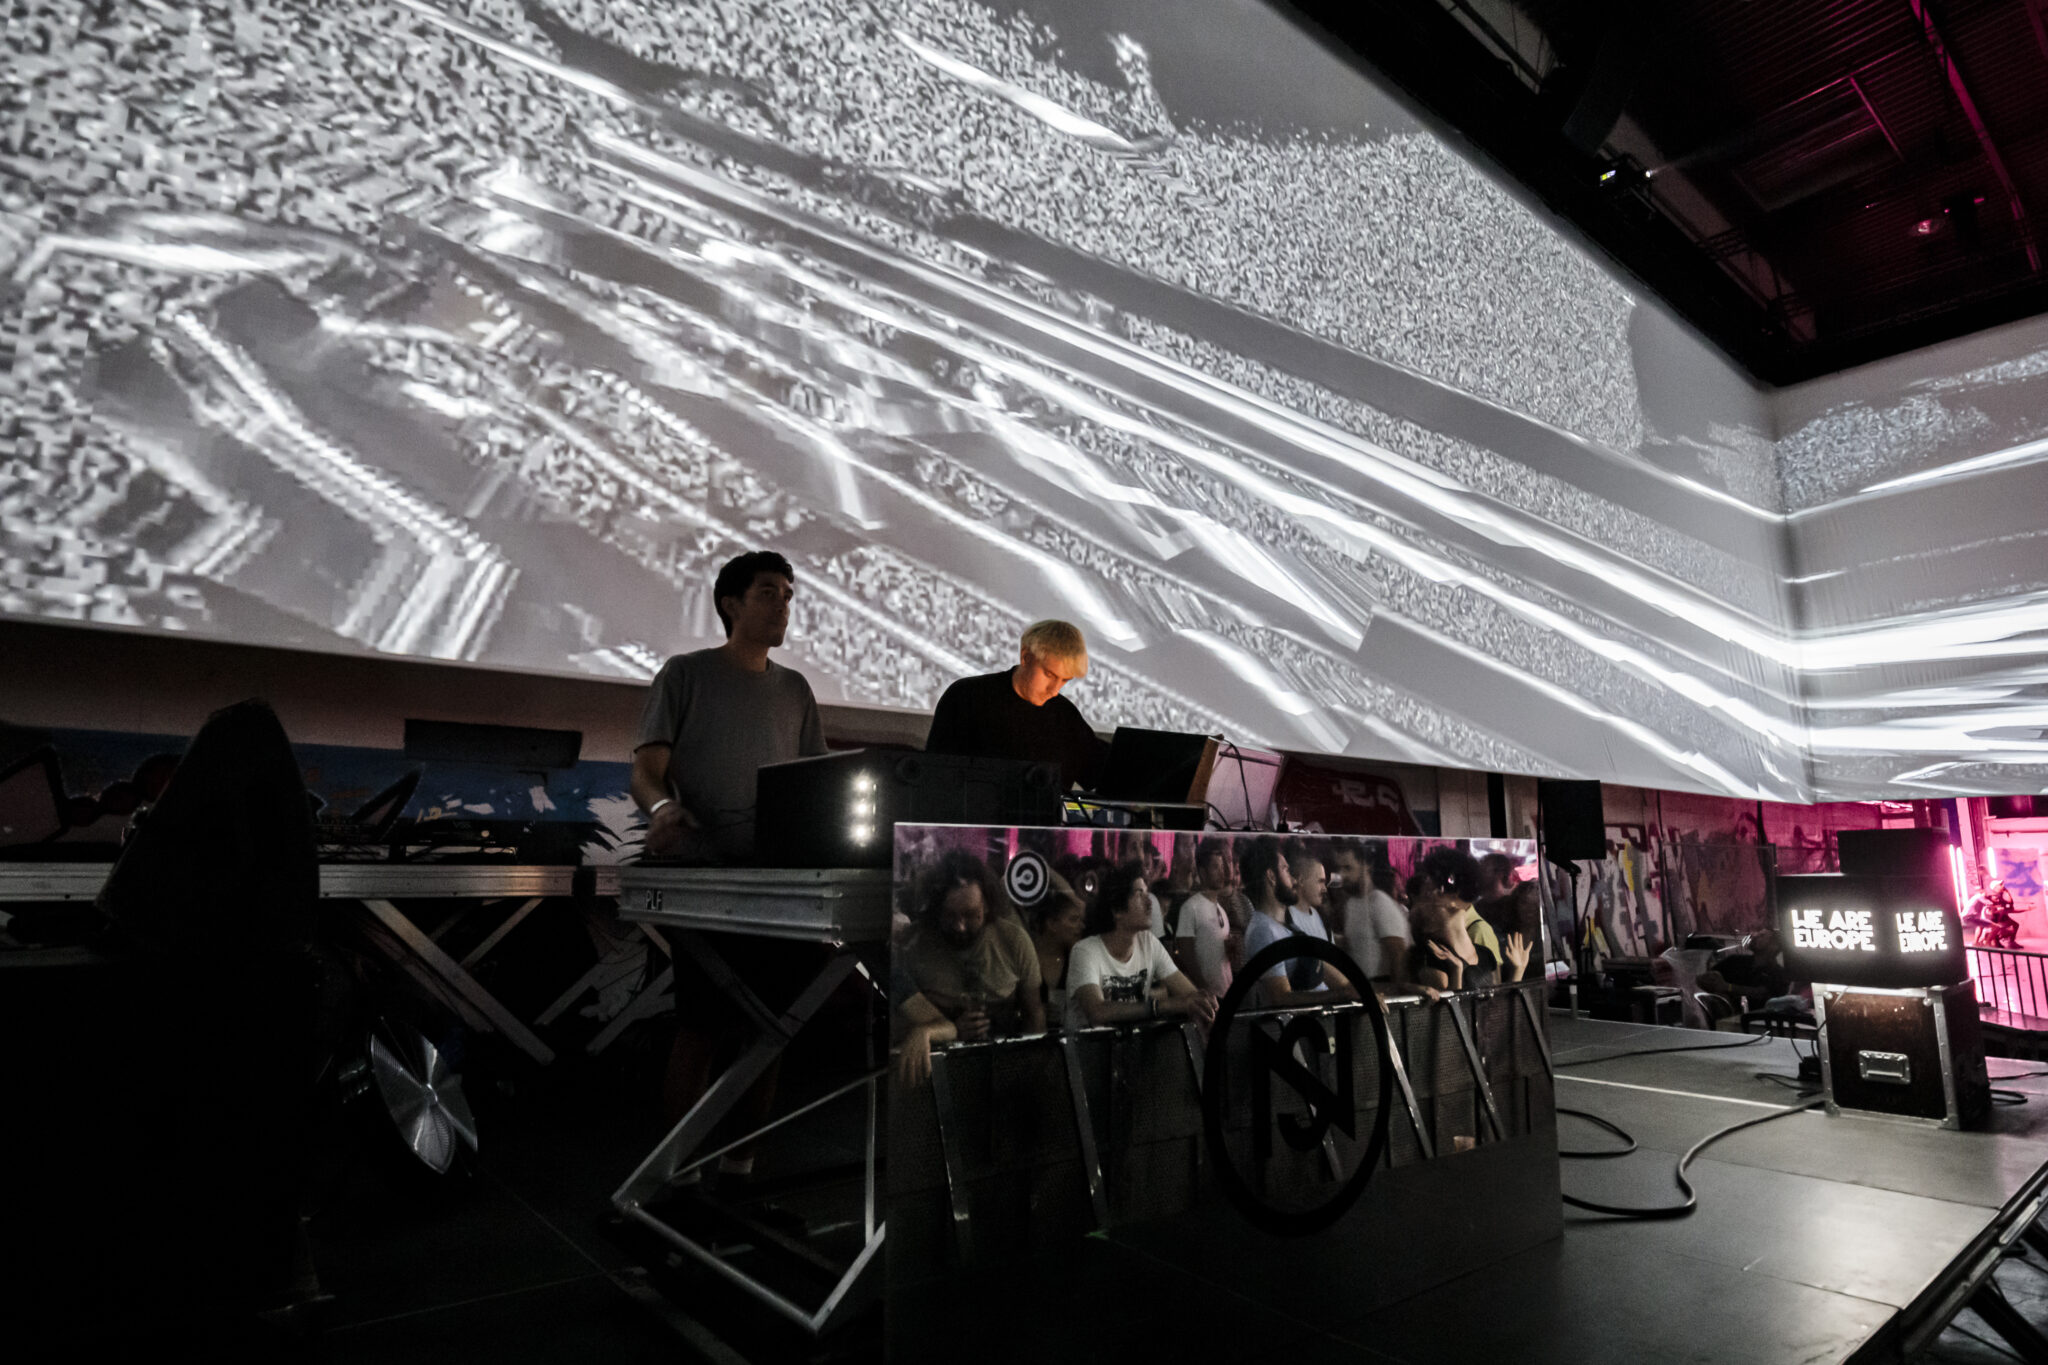 xliks - Nuits sonores @ We are Europe